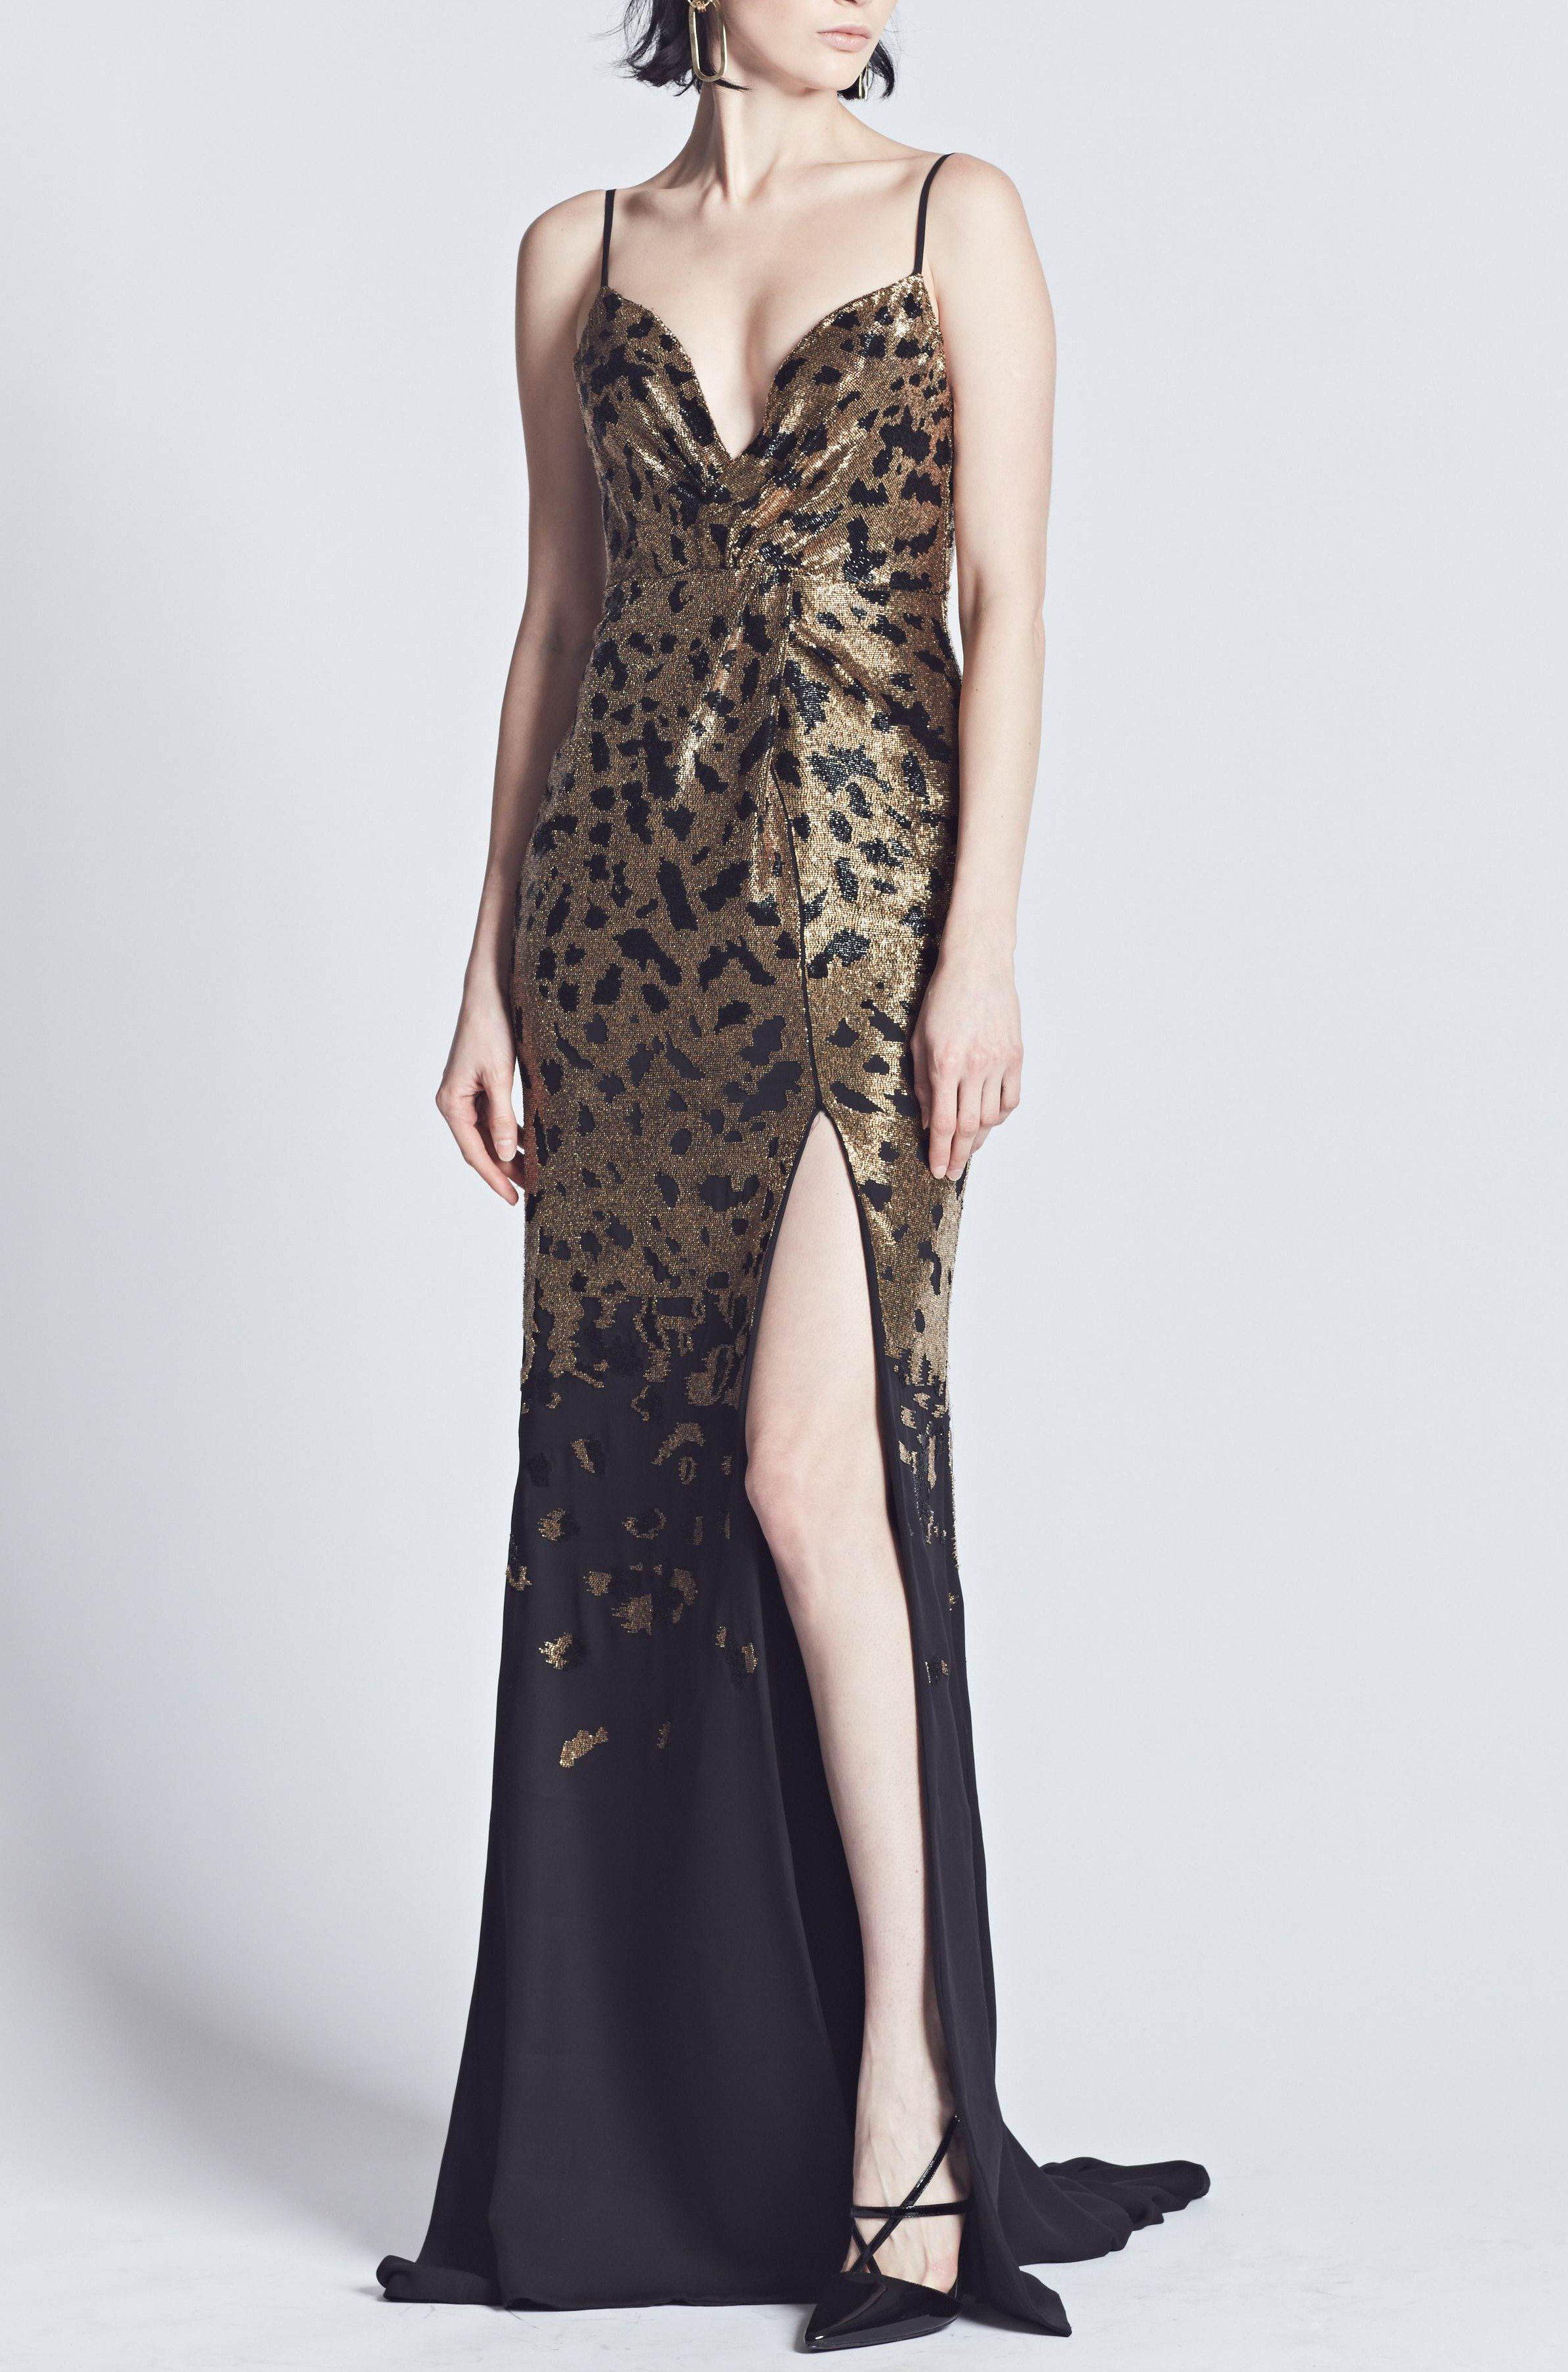 EMBROIDERED CHEETAH GOWN